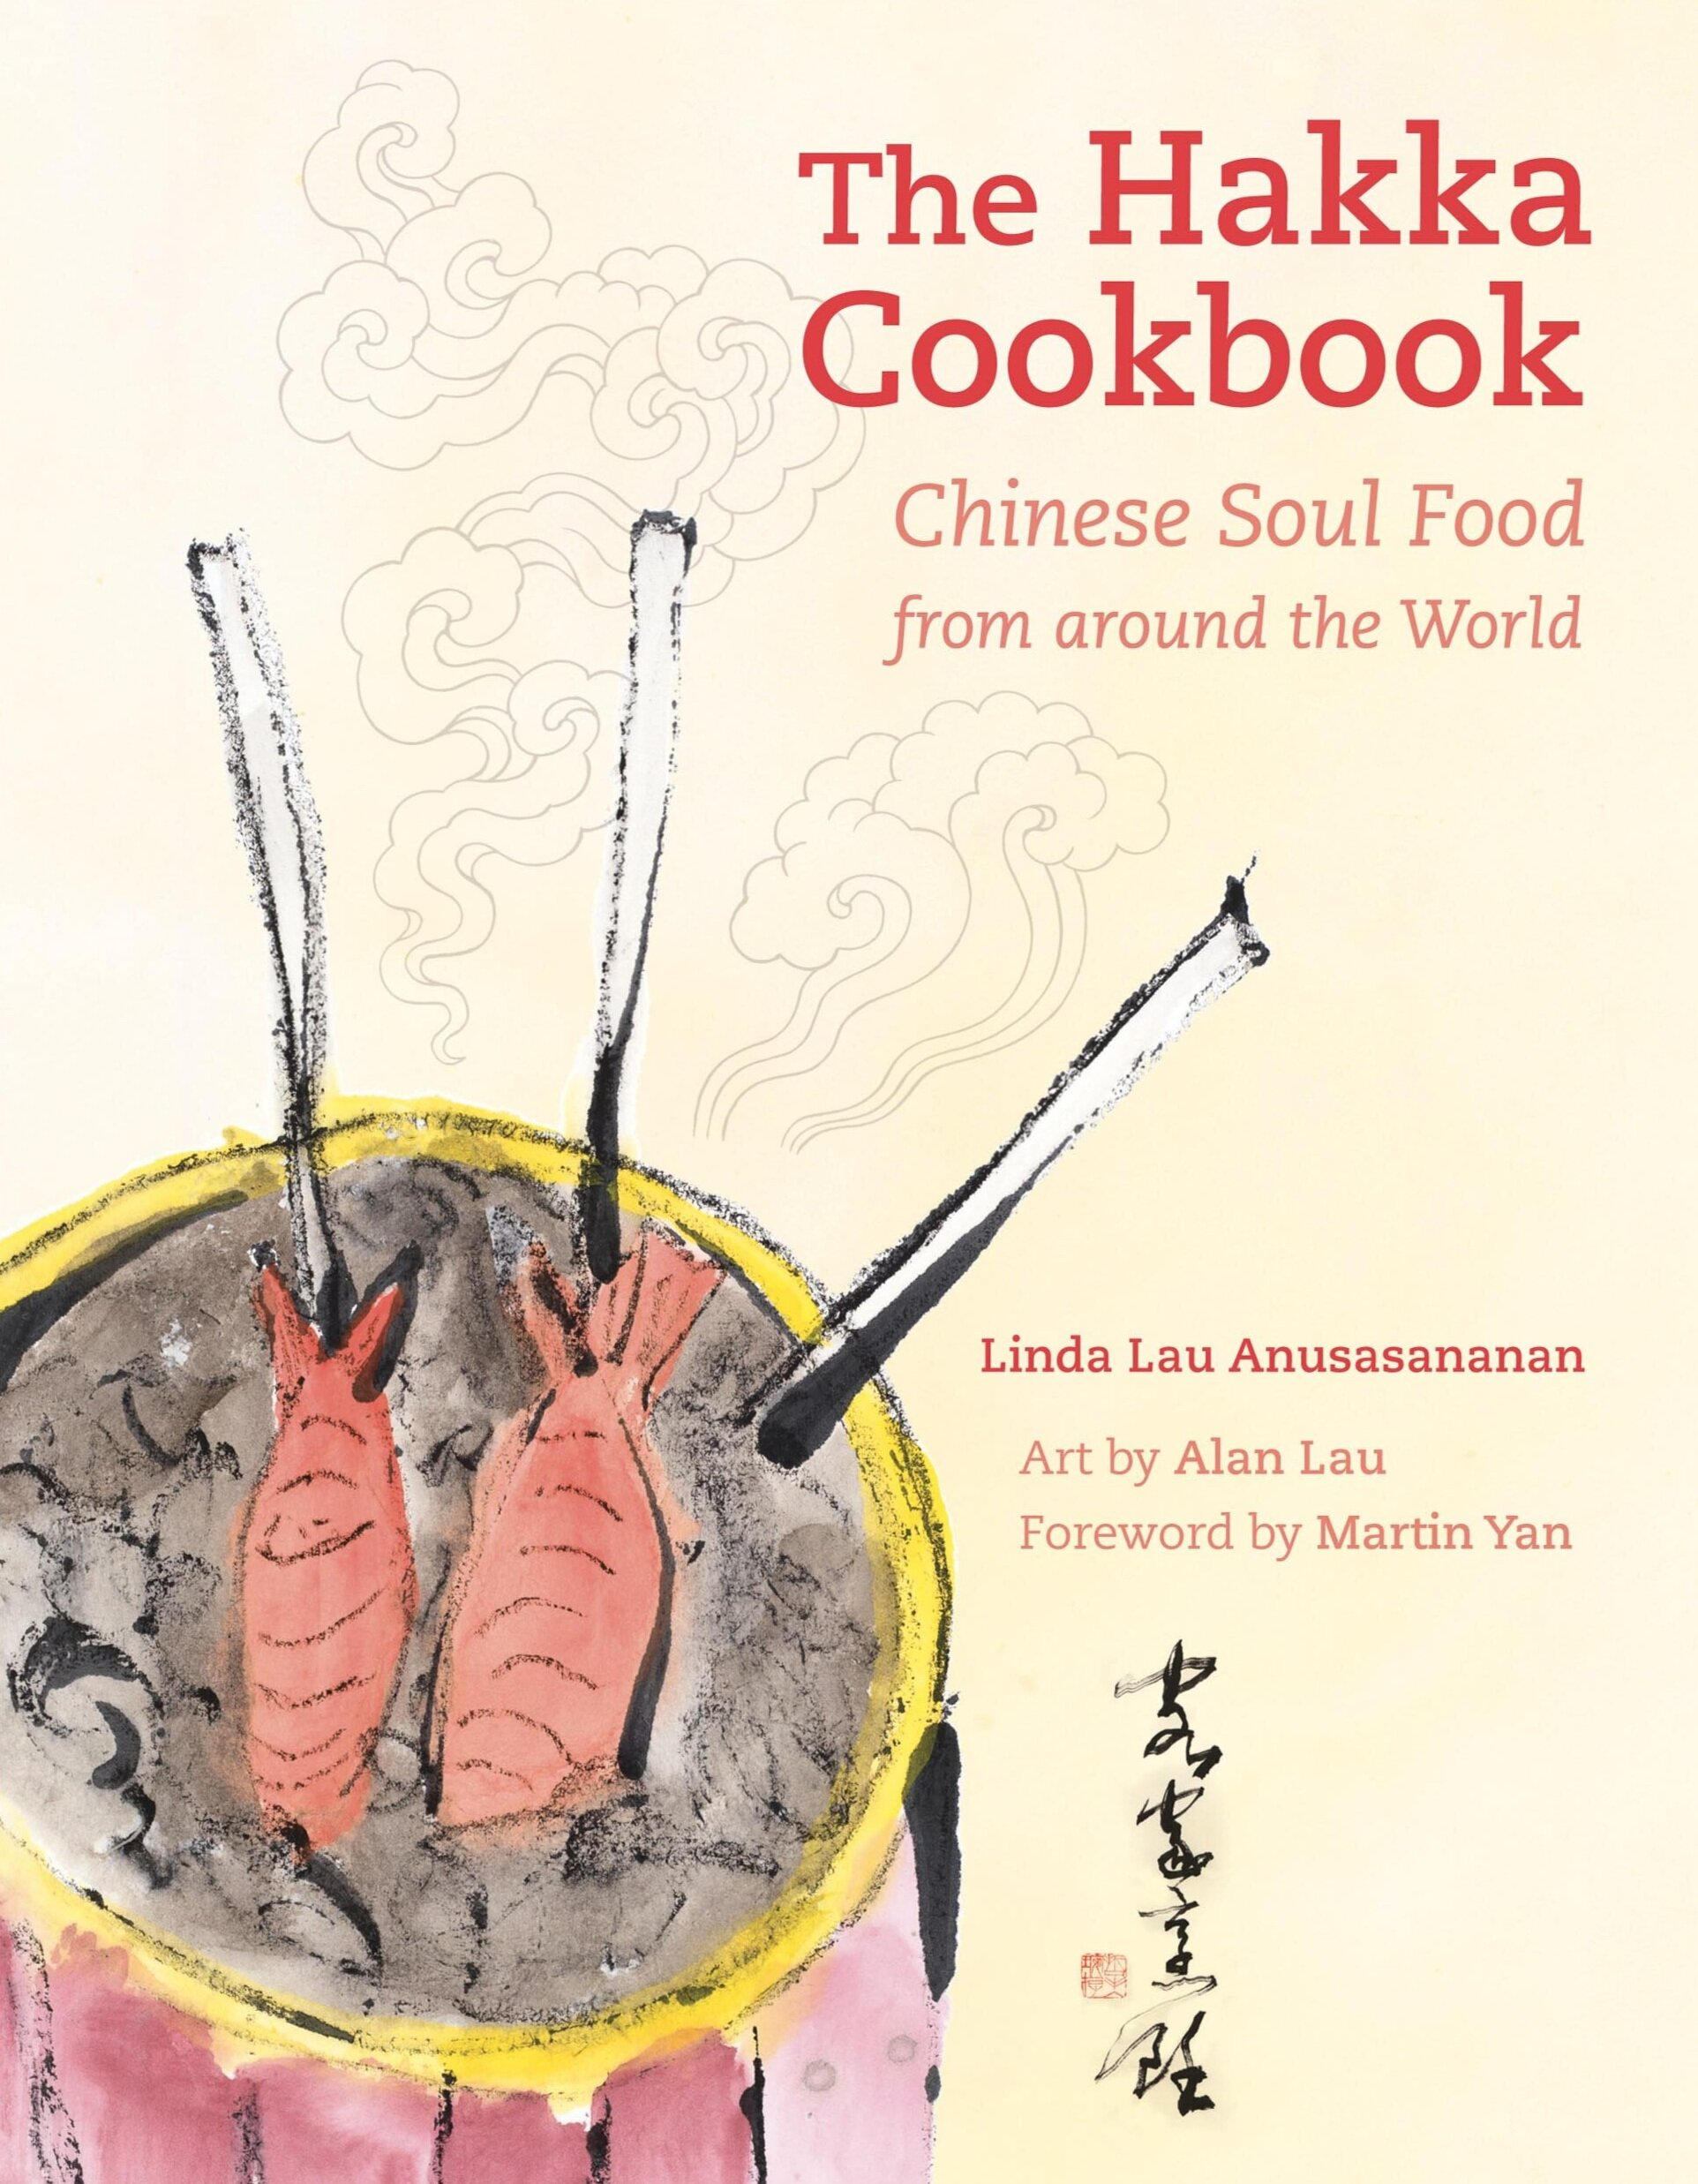 Behind the Cookbook: Linda Anusasananan on The Hakka Cookbook